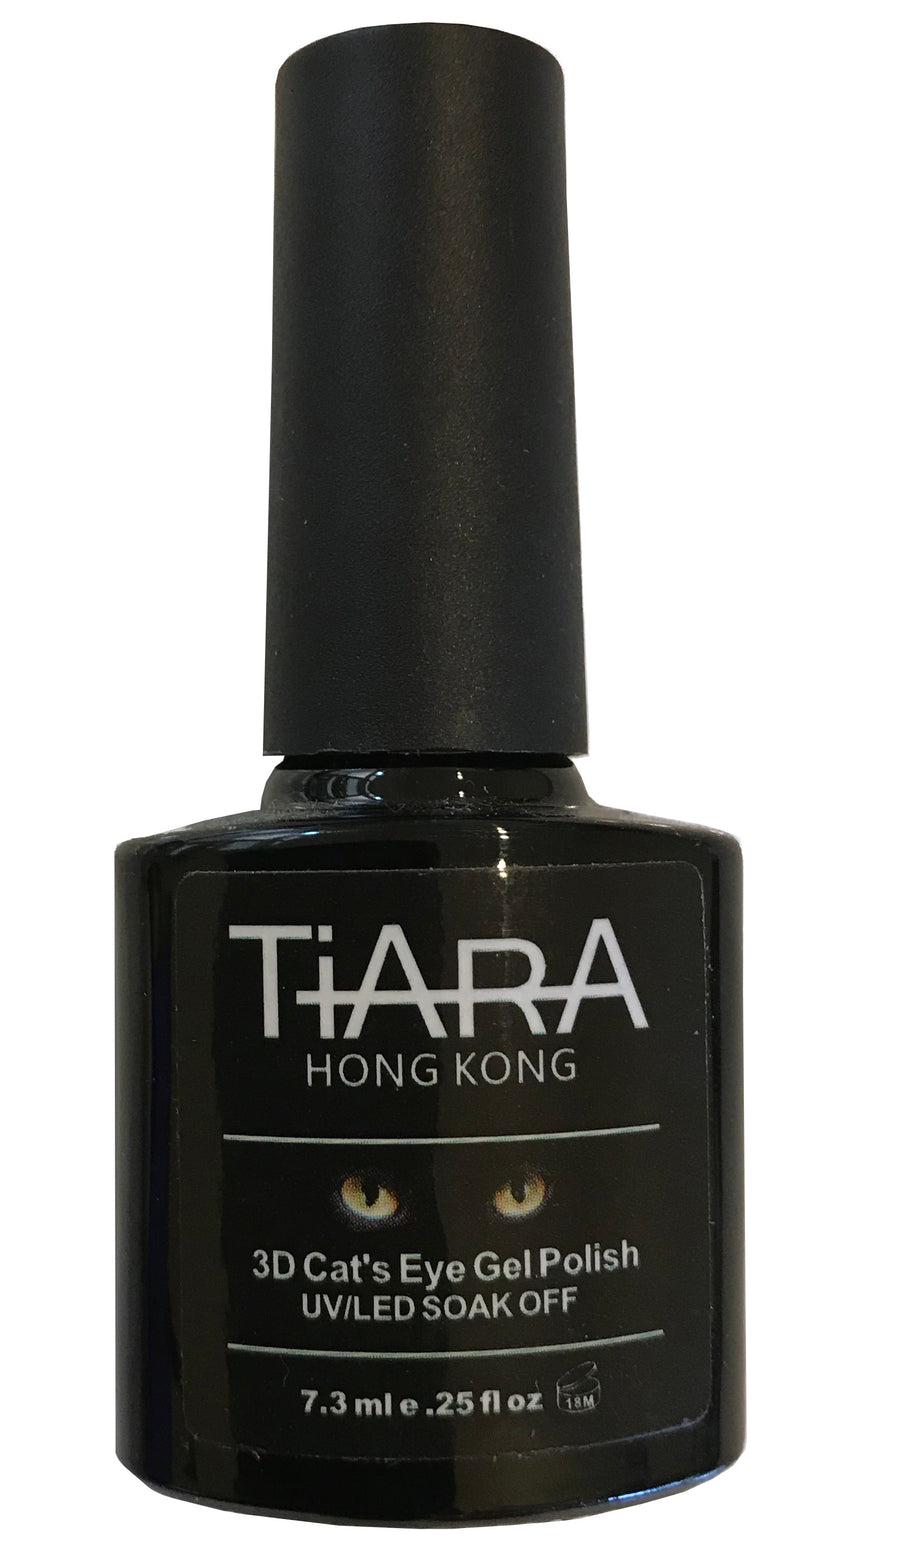 TiARA 3D CAT'S EYE GEL POLISH & MAGIC PLATE - 03